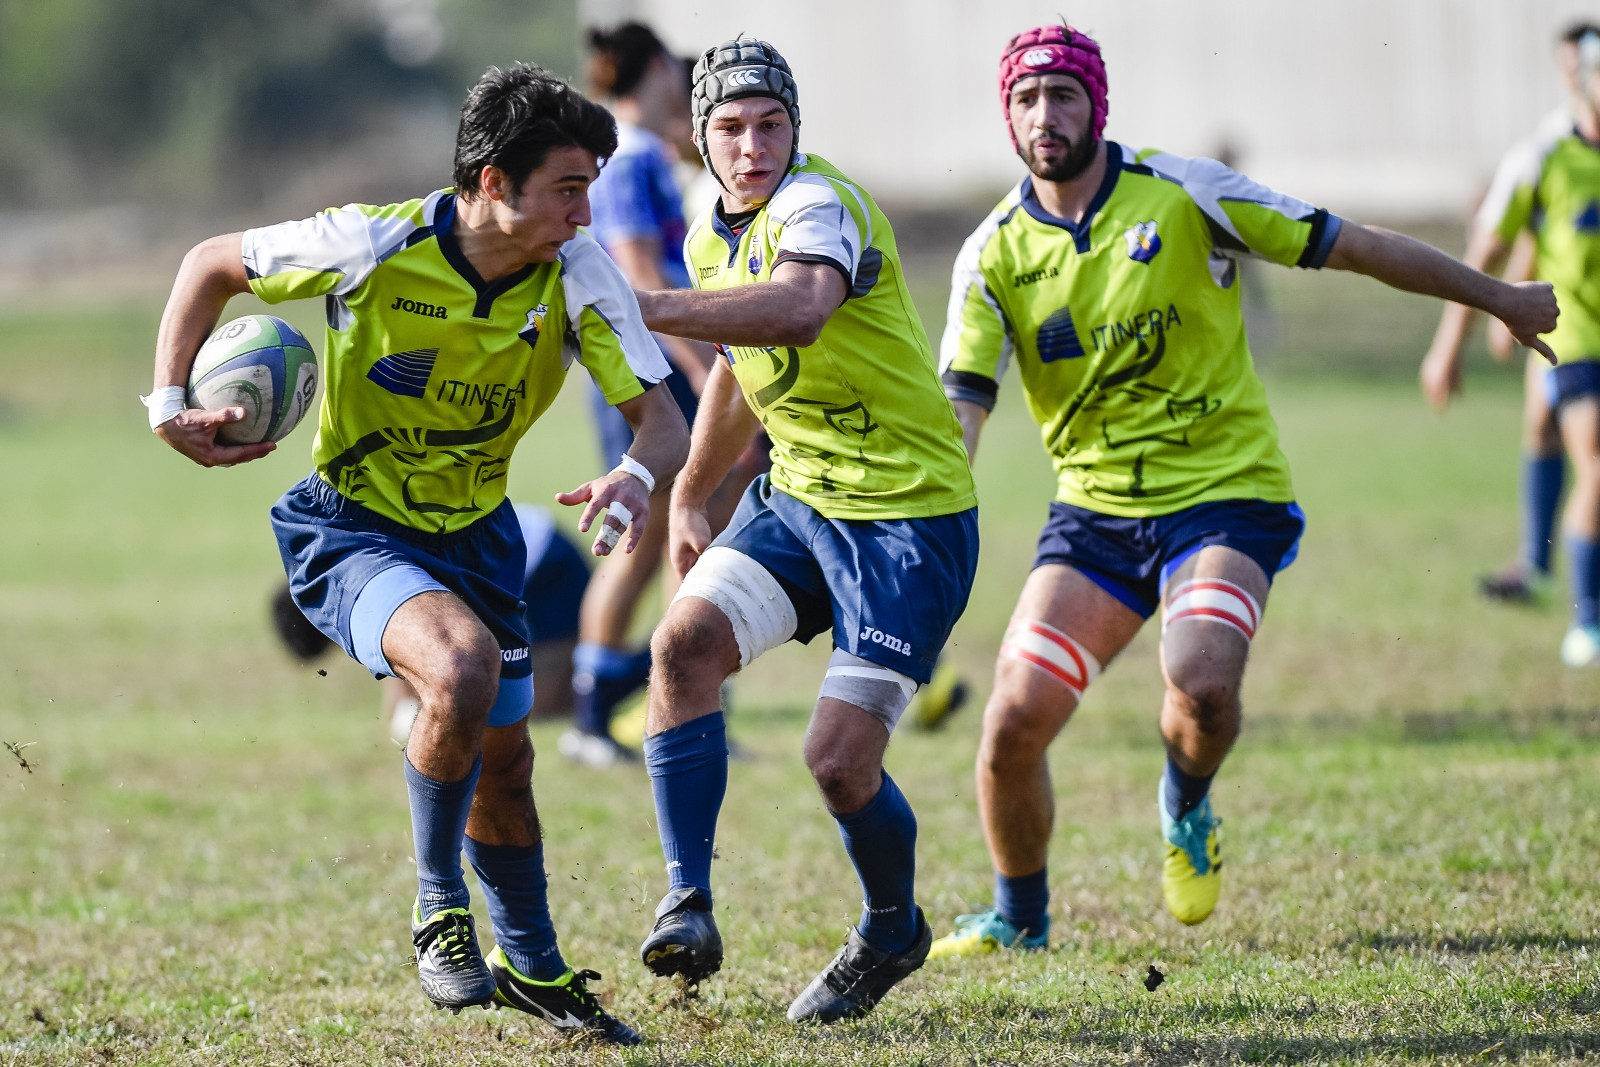 Serie A: Itinera CUS Ad Maiora Rugby 1951 - TKGroup VII Rugby Torino